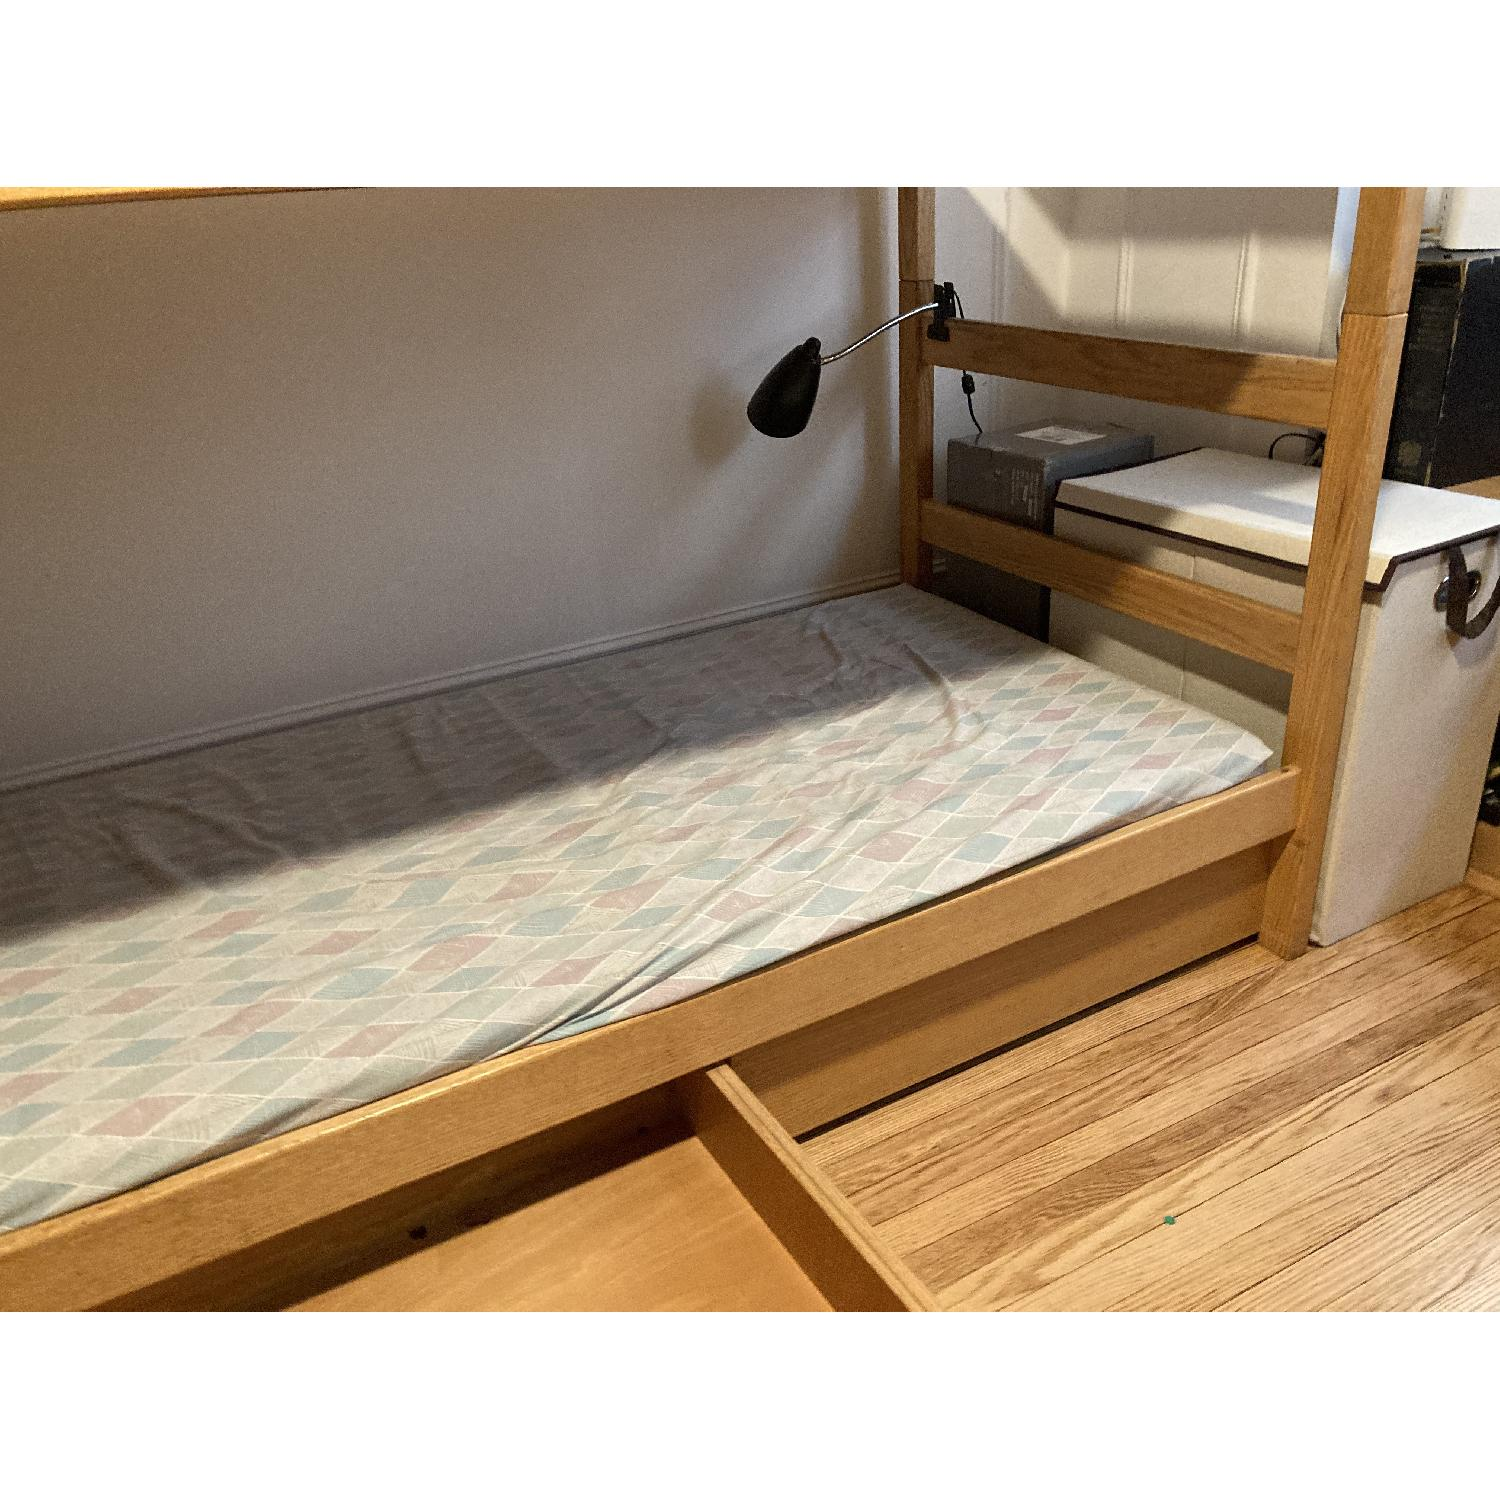 Pottery Barn Solid Wood Bunk Beds - image-1